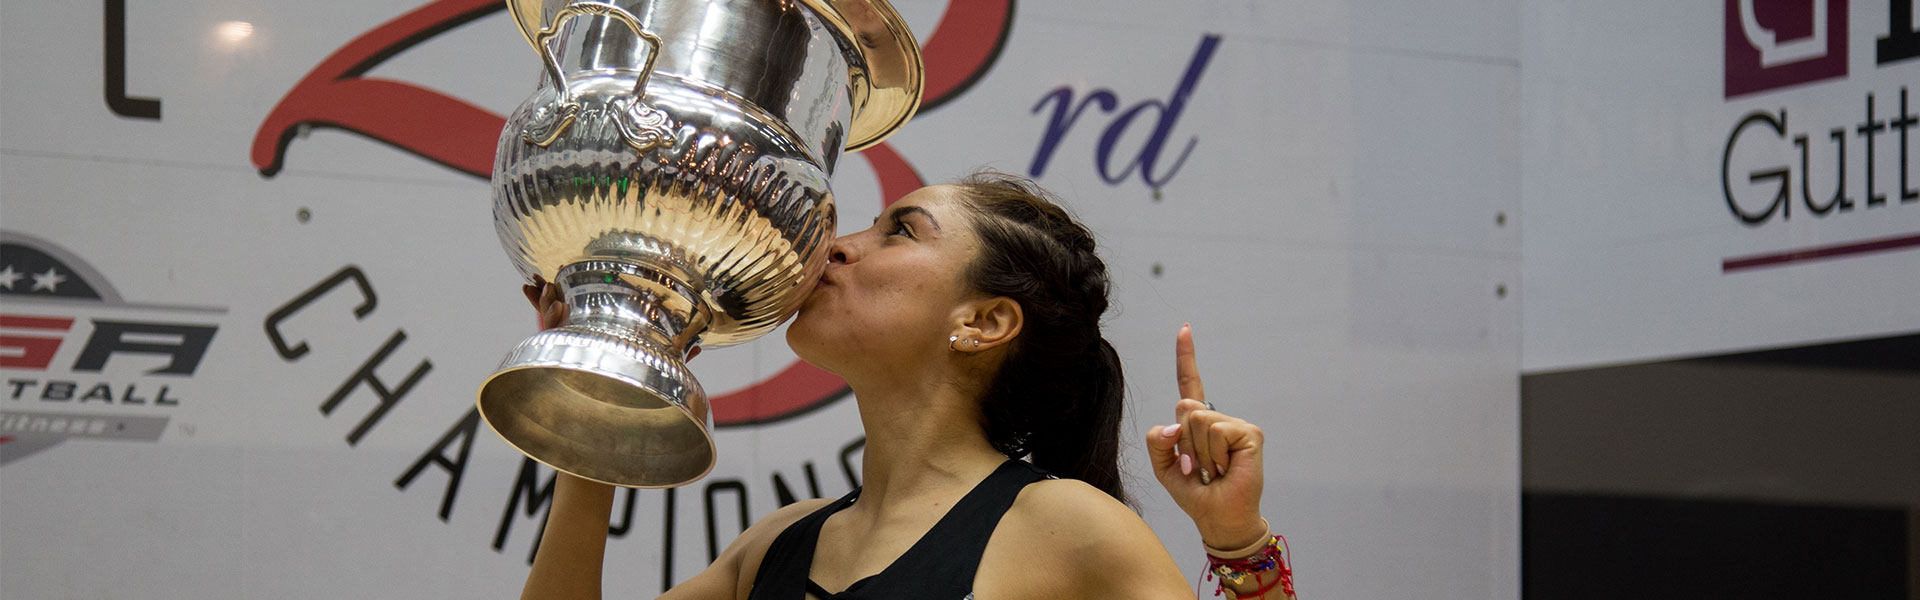 HEAD Penn's Top Ranked Racquetball Player Wins Eighth US OPEN Title